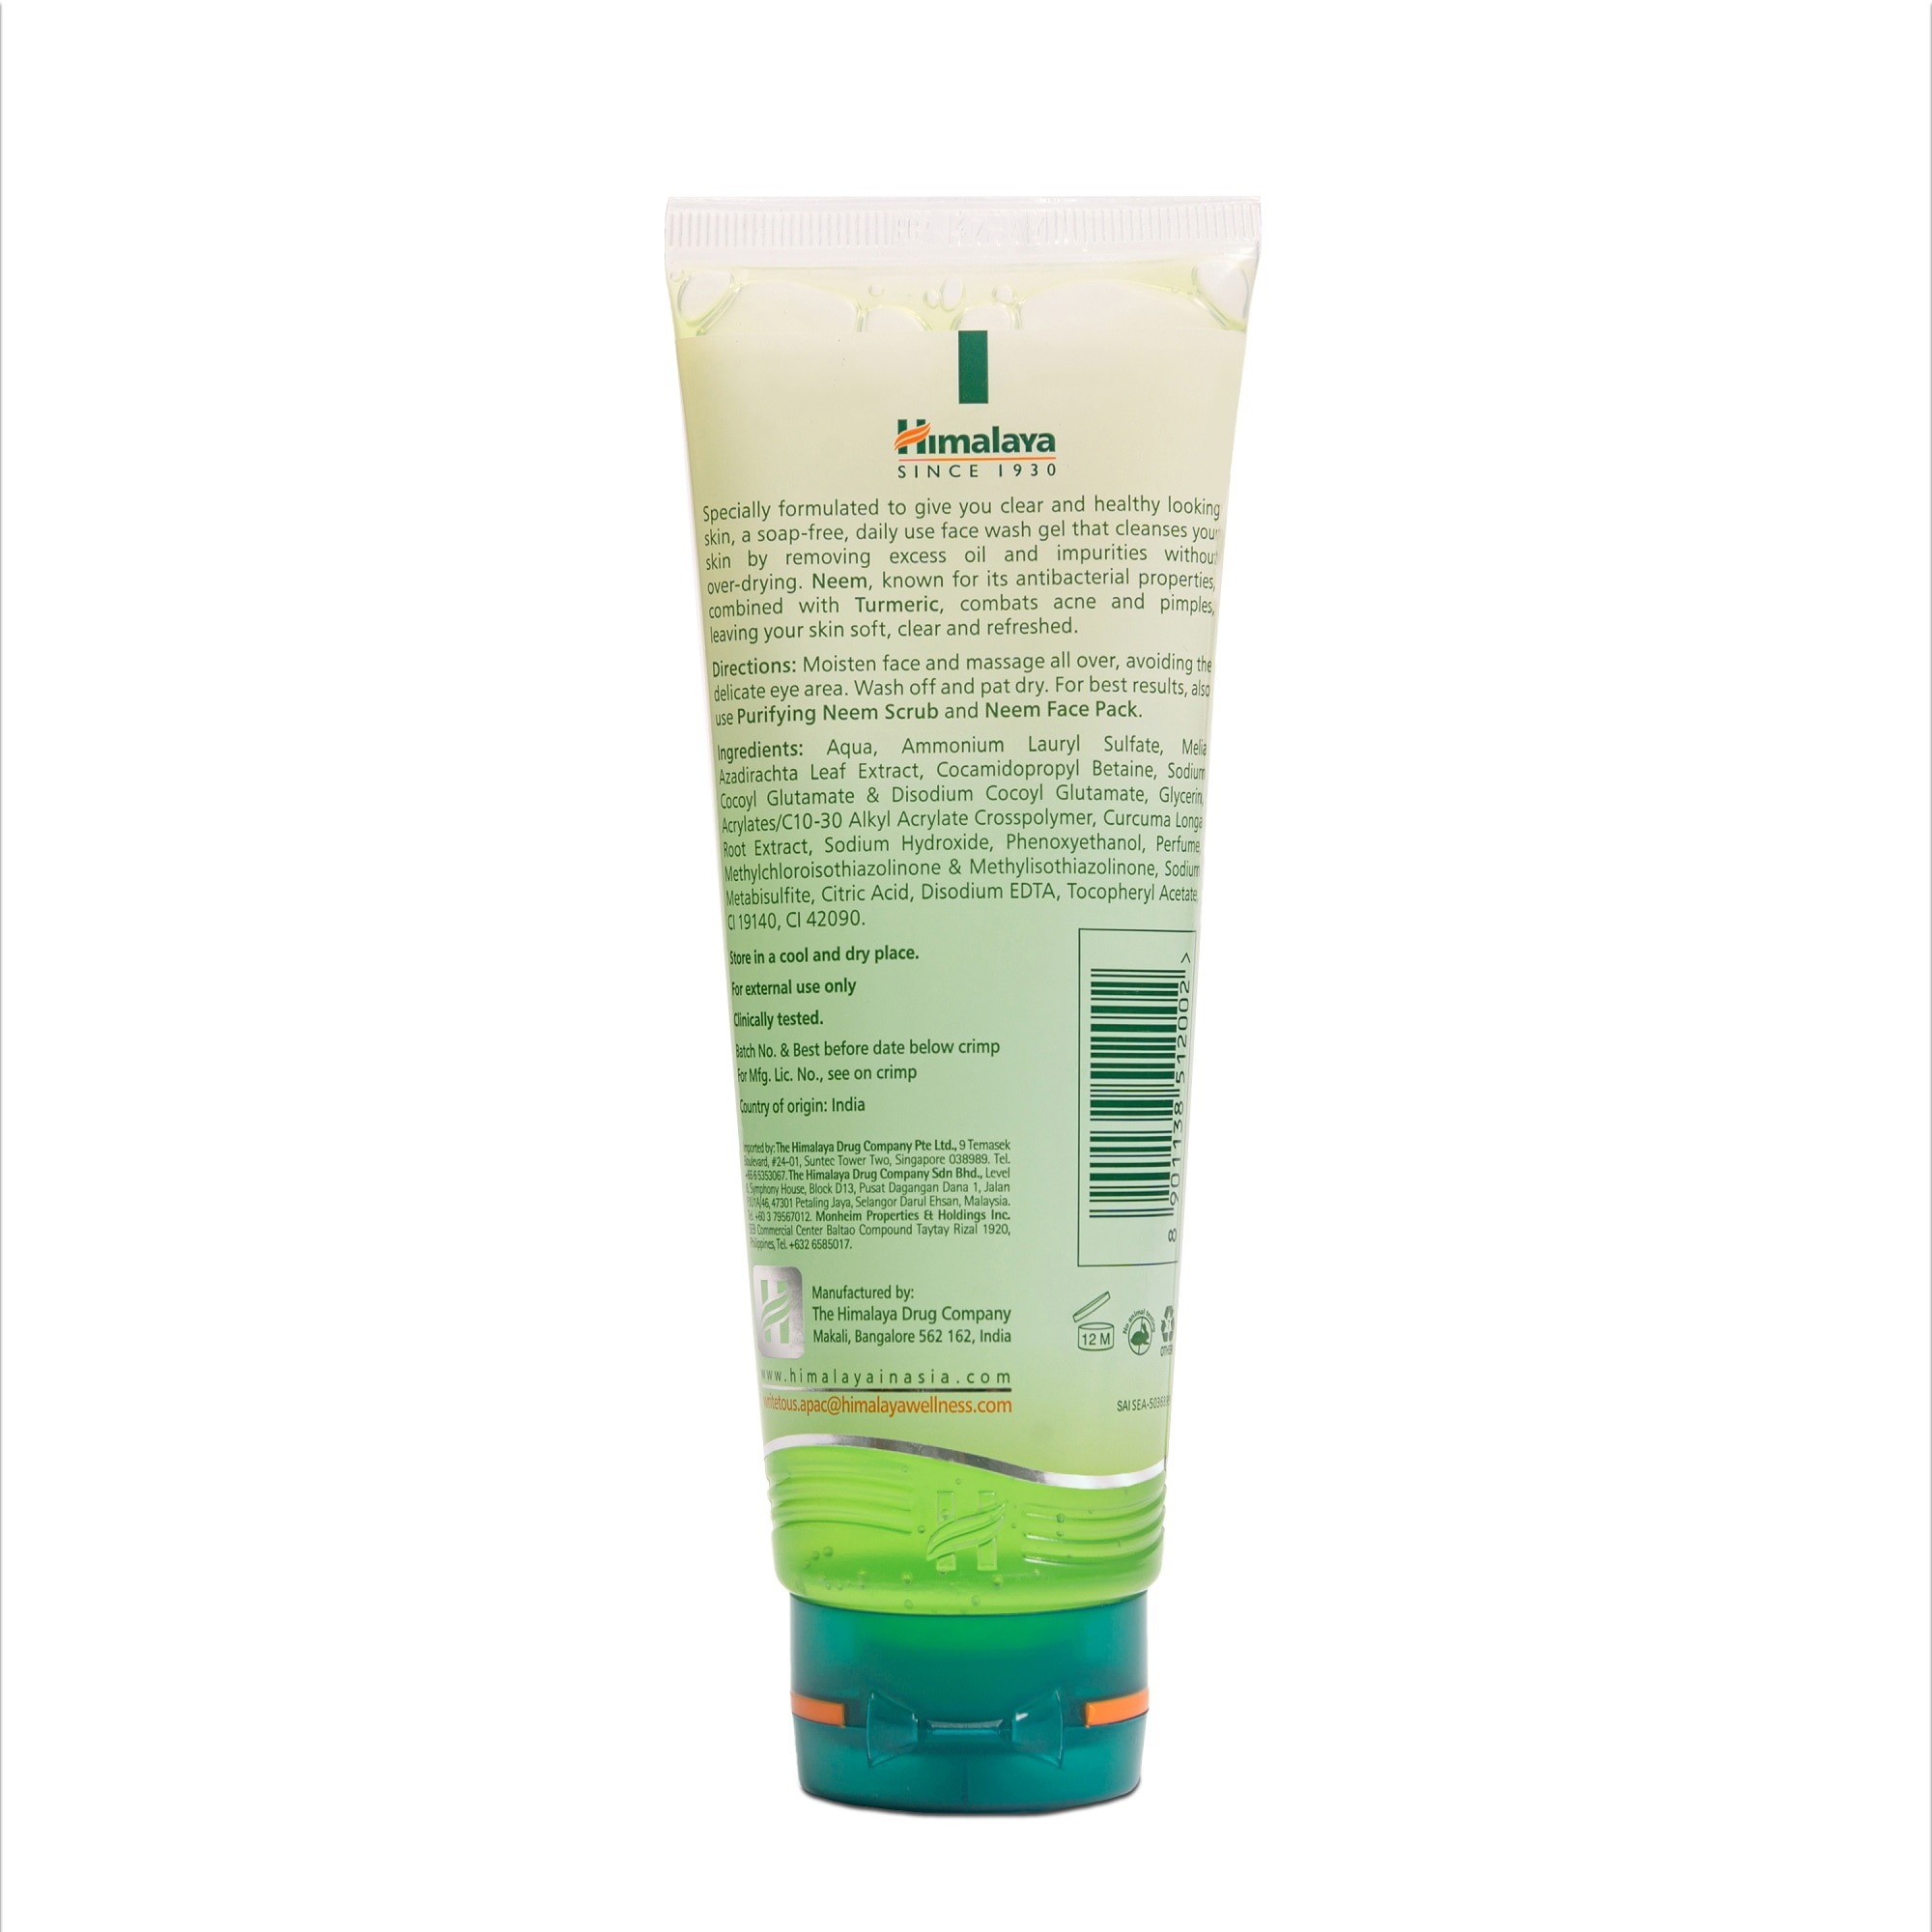 HIMALAYAPurifying Neem Facial Wash 100ml,For WomenFree (1) Watsons Dermaction Plus Antiacne St20x2 for every purchase of Skin Care products